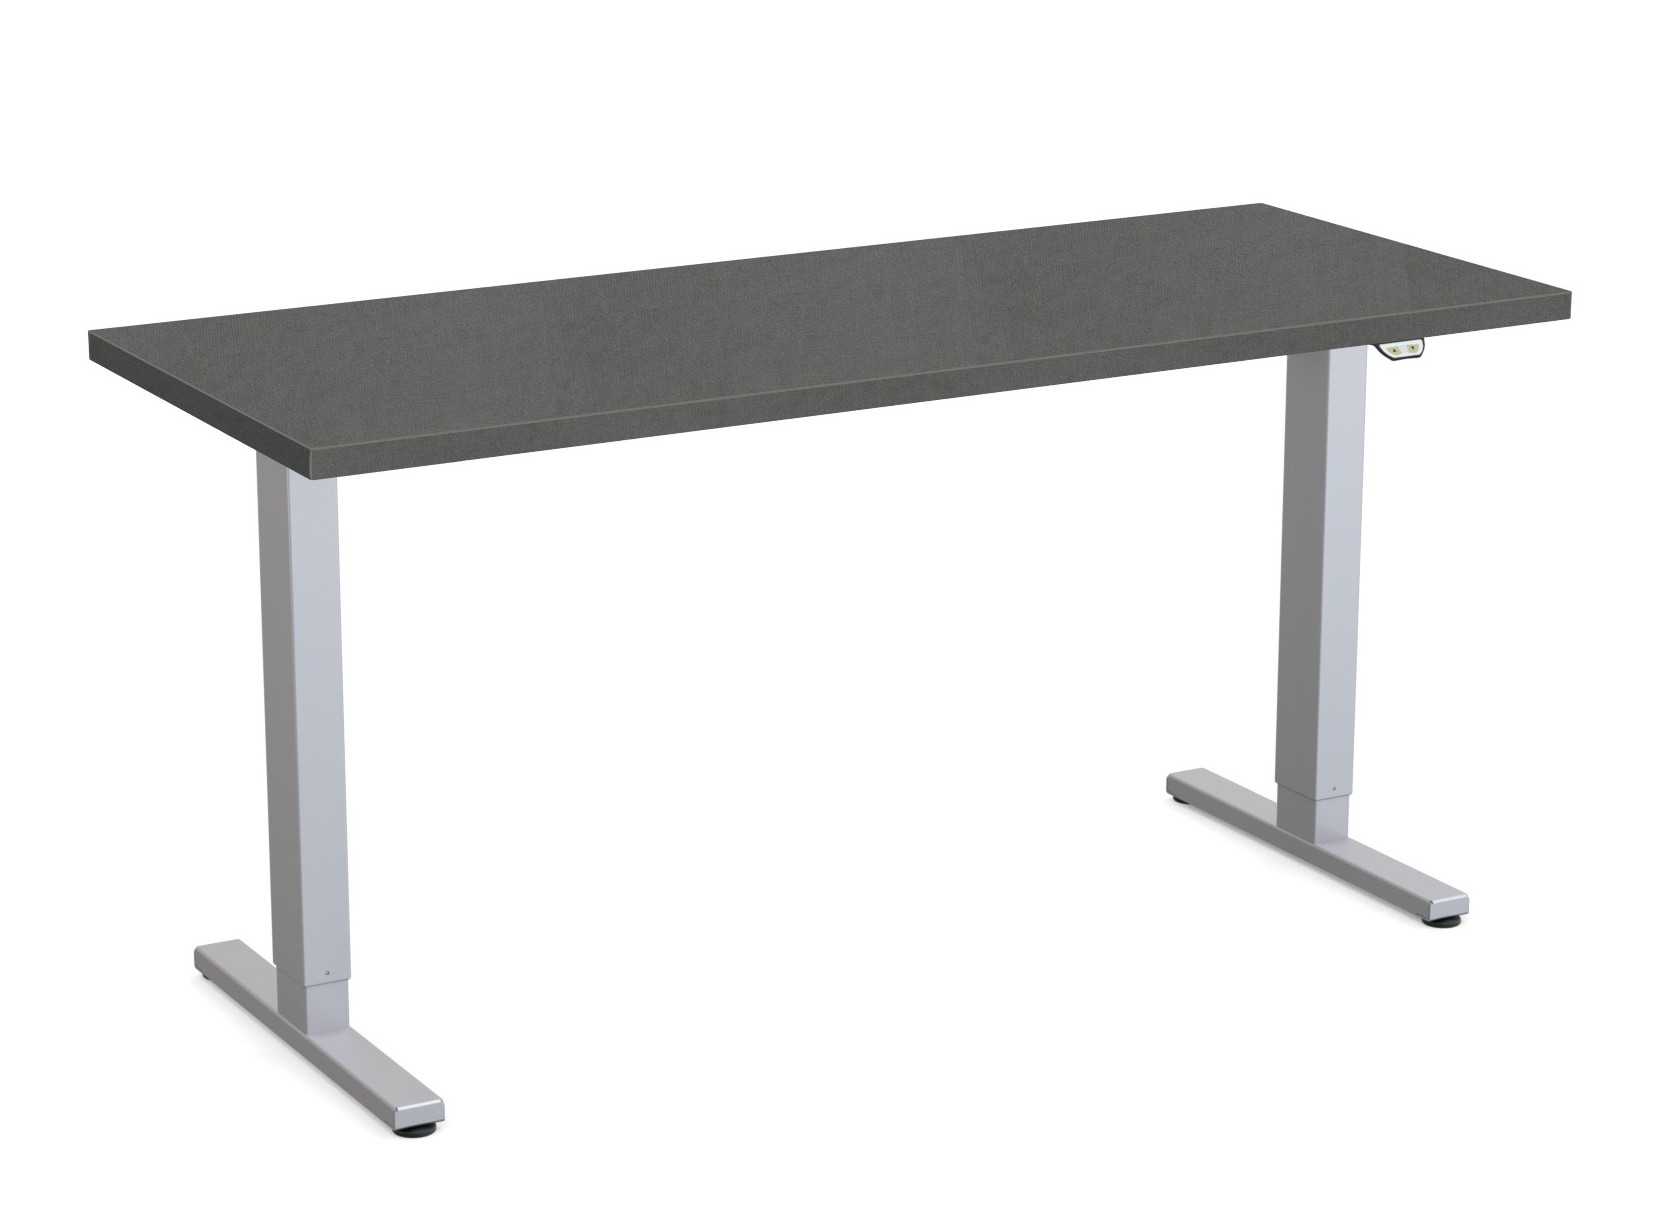 special-t liberty height adjustable table chino